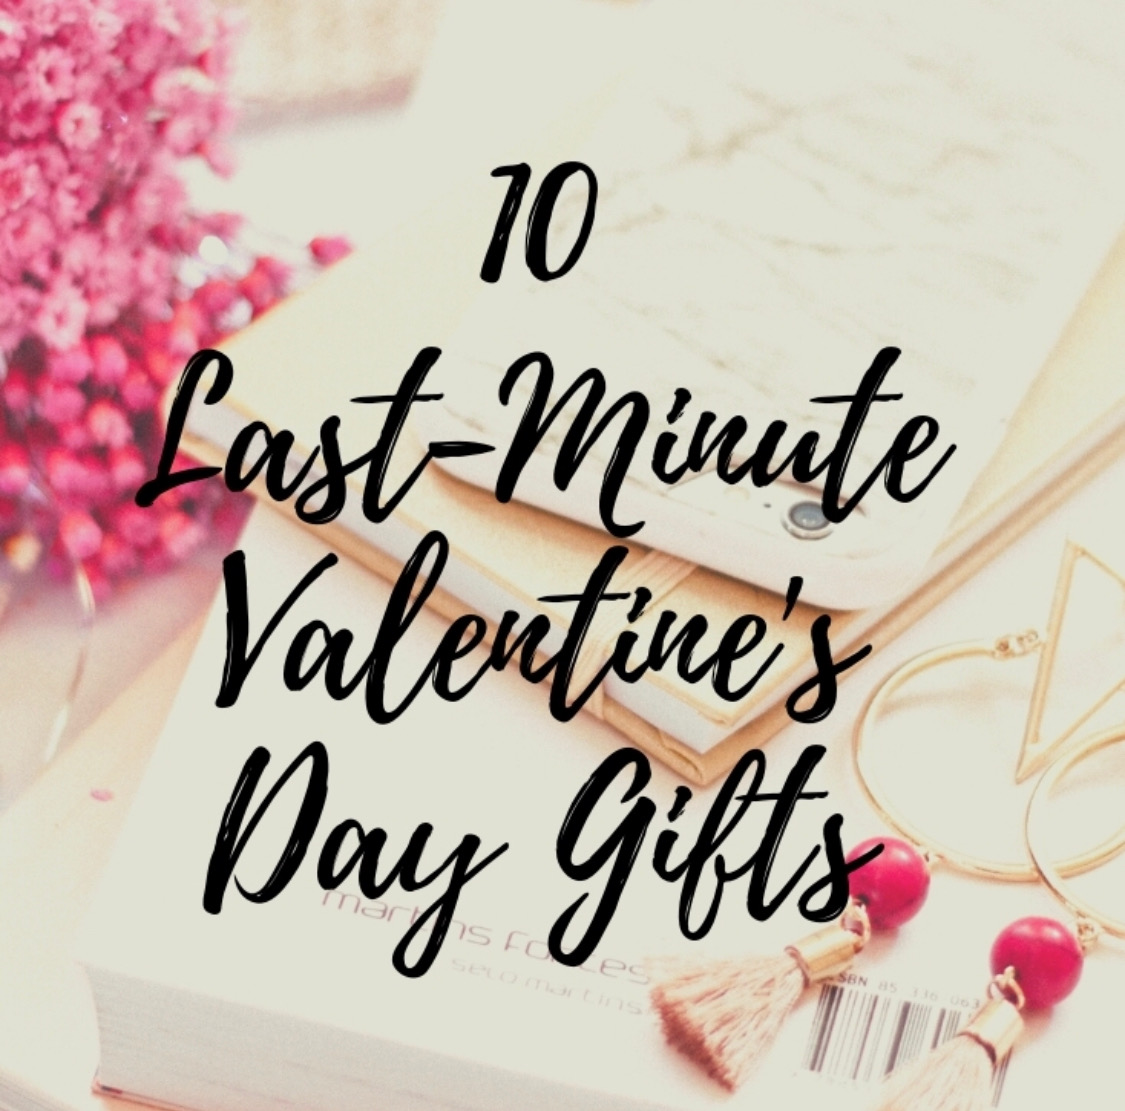 10 Last-Minute Valentine's Day Gifts She'll Love